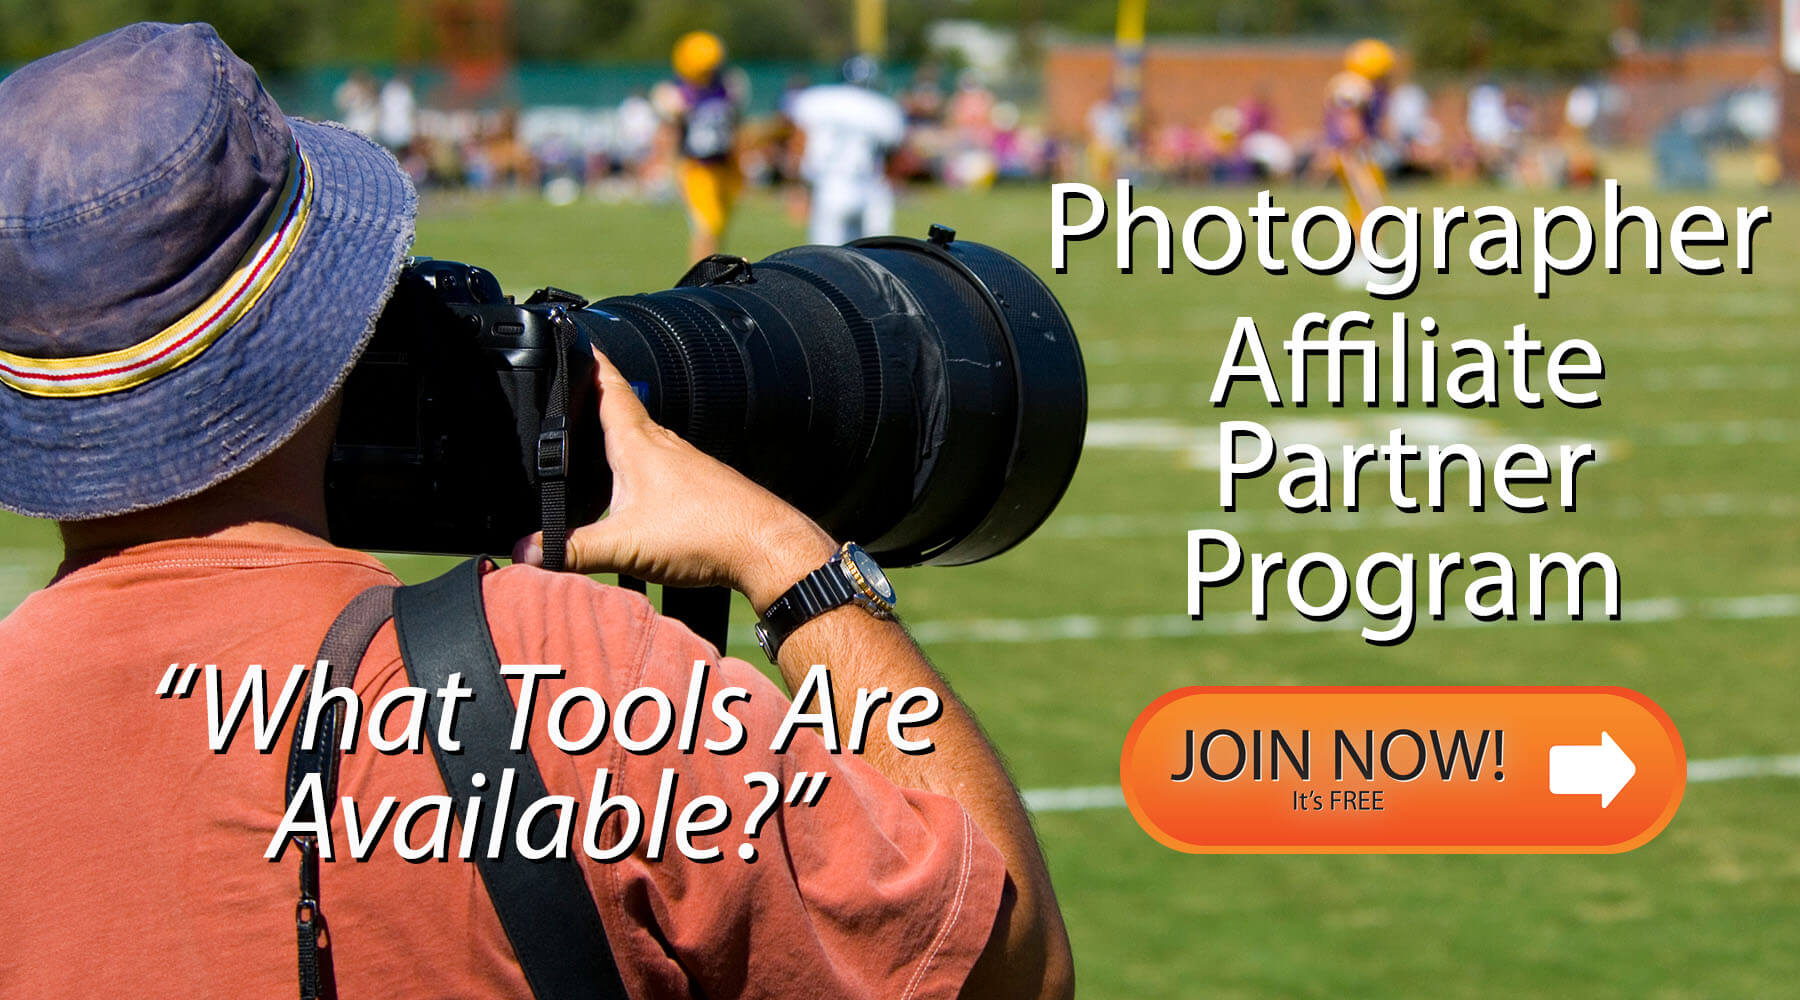 What Tools Are Available In the Wallhogs Photographer Affiliate Partner Program Enrollment